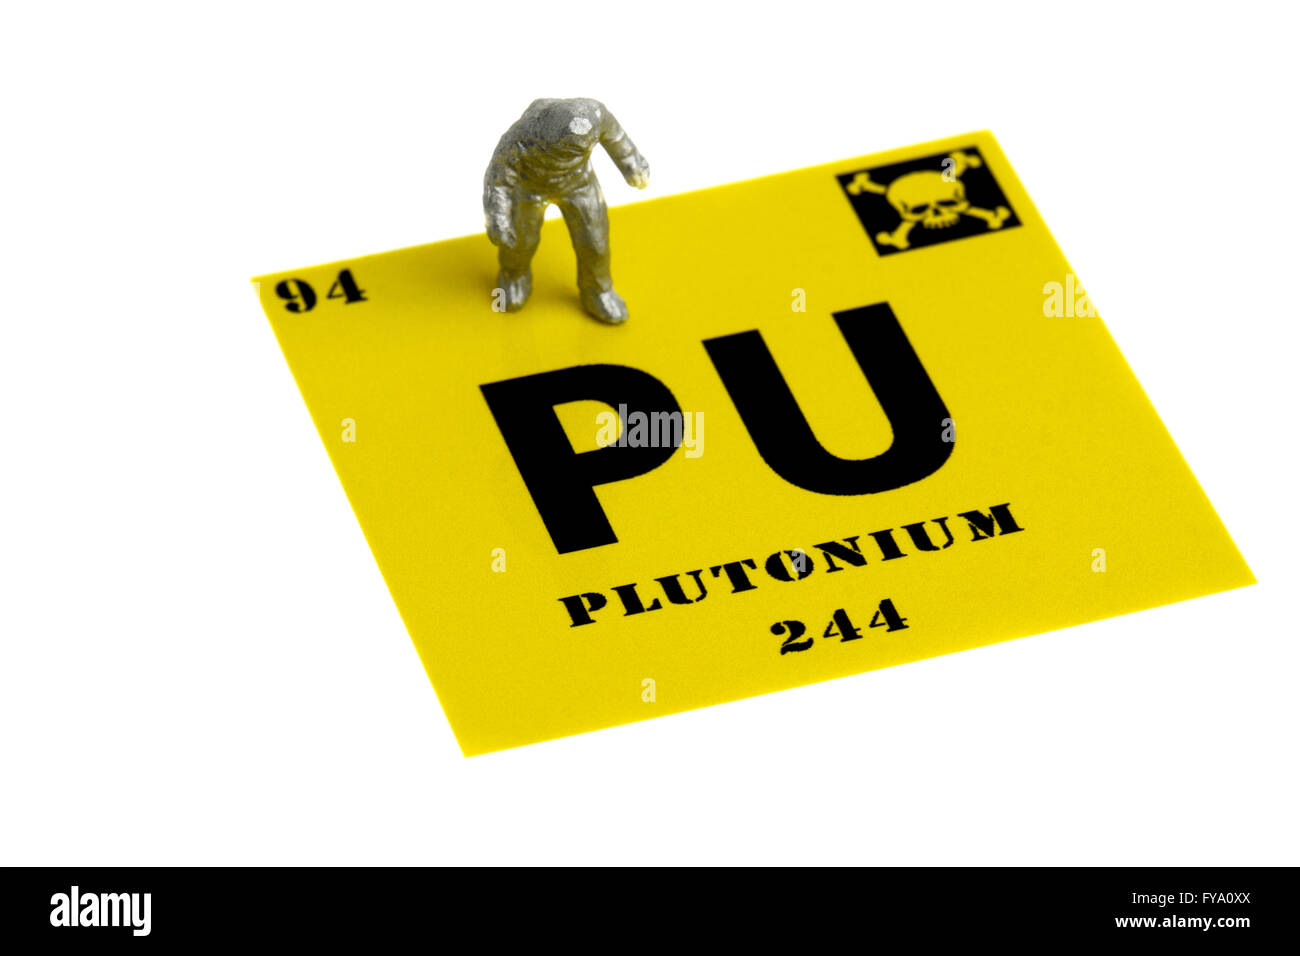 Plutonium symbol miniature man chemical suit - Stock Image